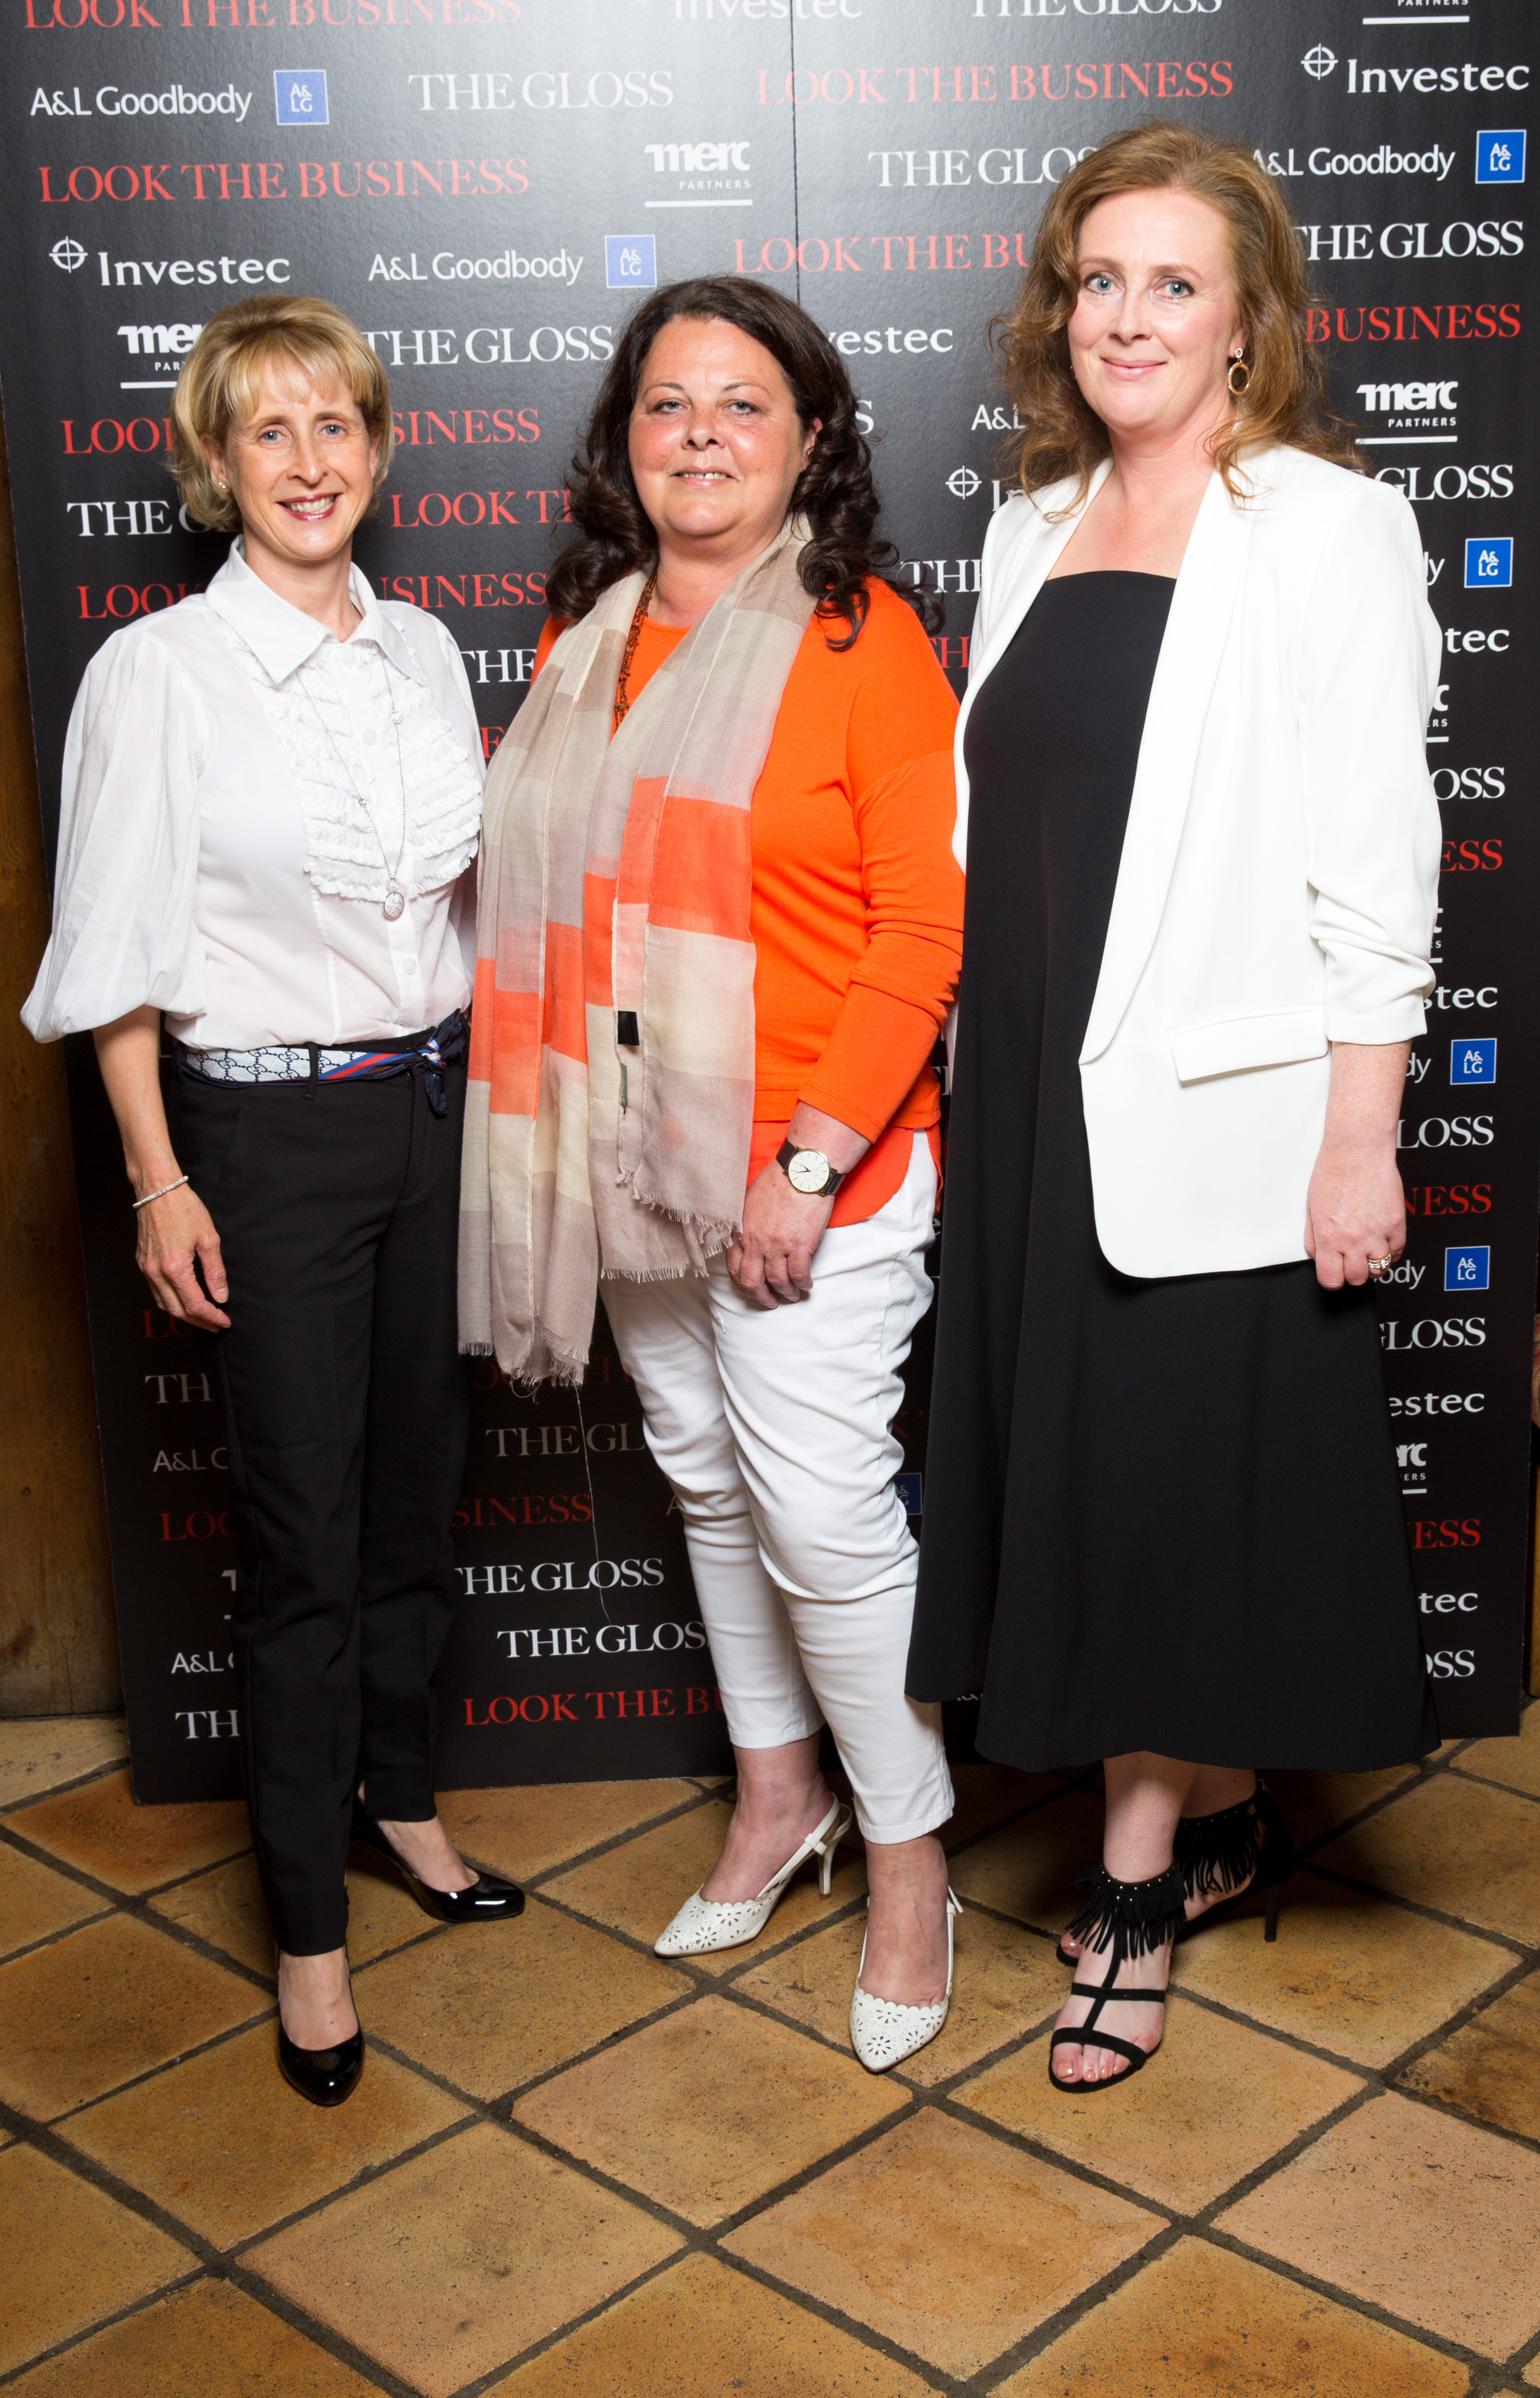 Alison Fanagan, A&L Goodbody, Lorraine McMahon, (Anglo Irish Beef) and Sinead Lohan, Investec